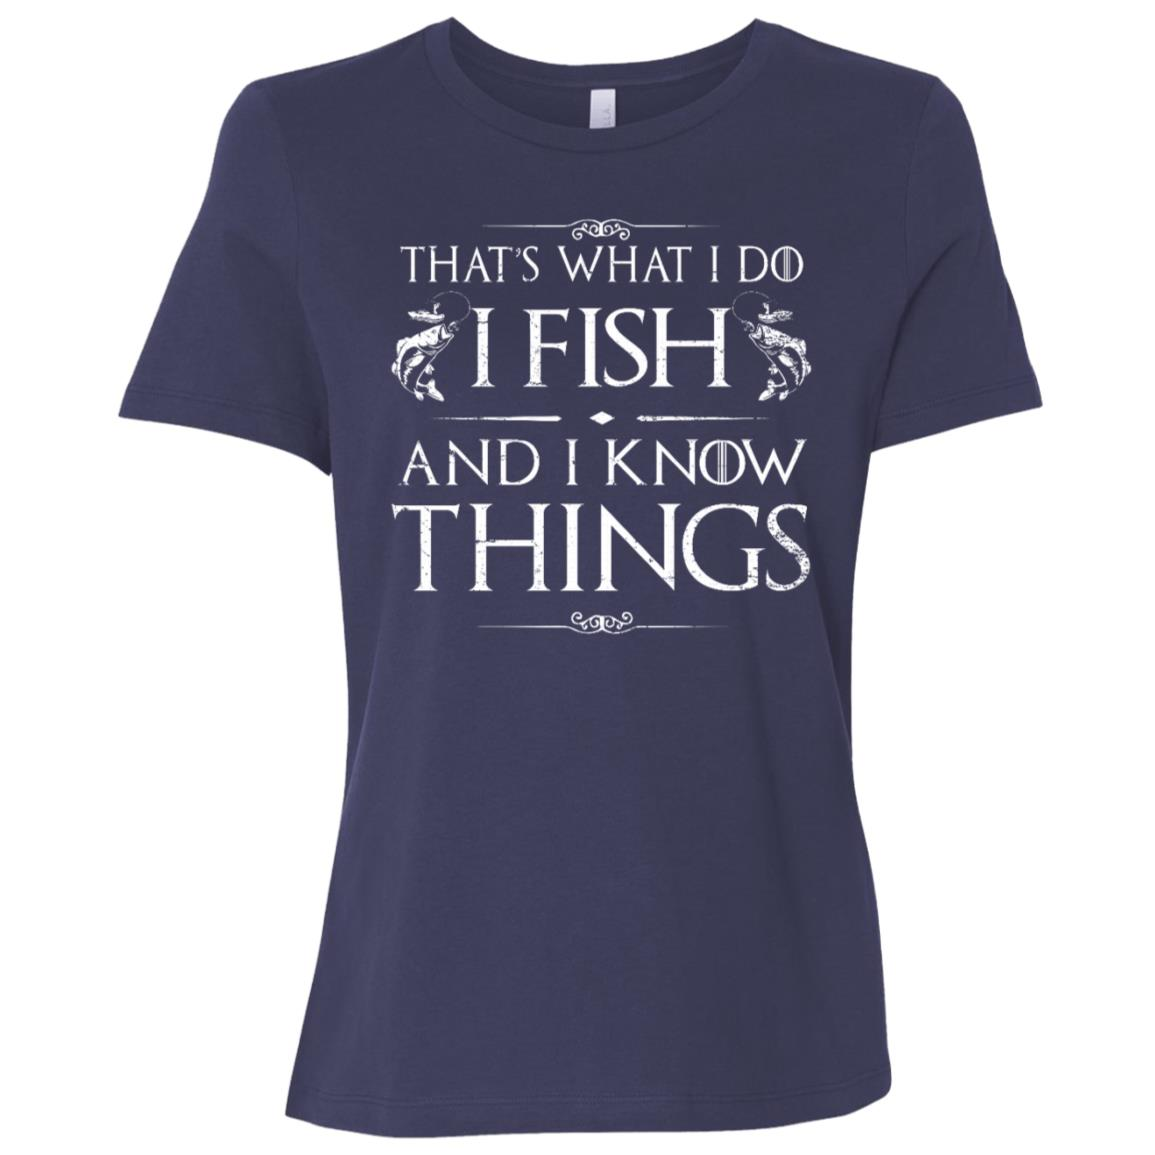 I Fish and I Know Things, Funny Fishing Fisherman Gift Women Short Sleeve T-Shirt